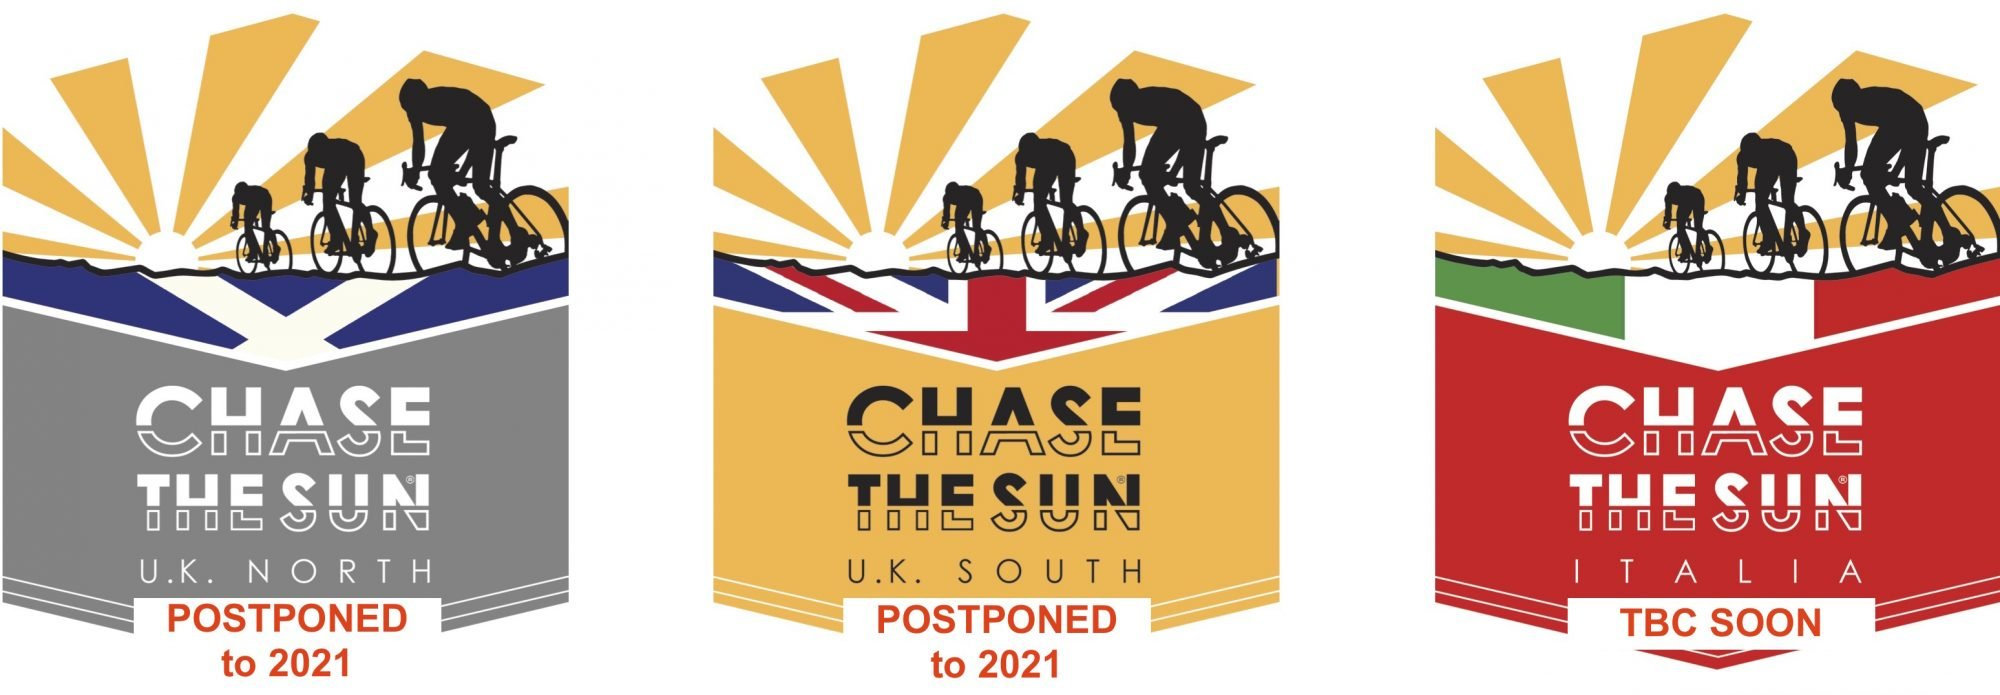 Chase the Sun postponed